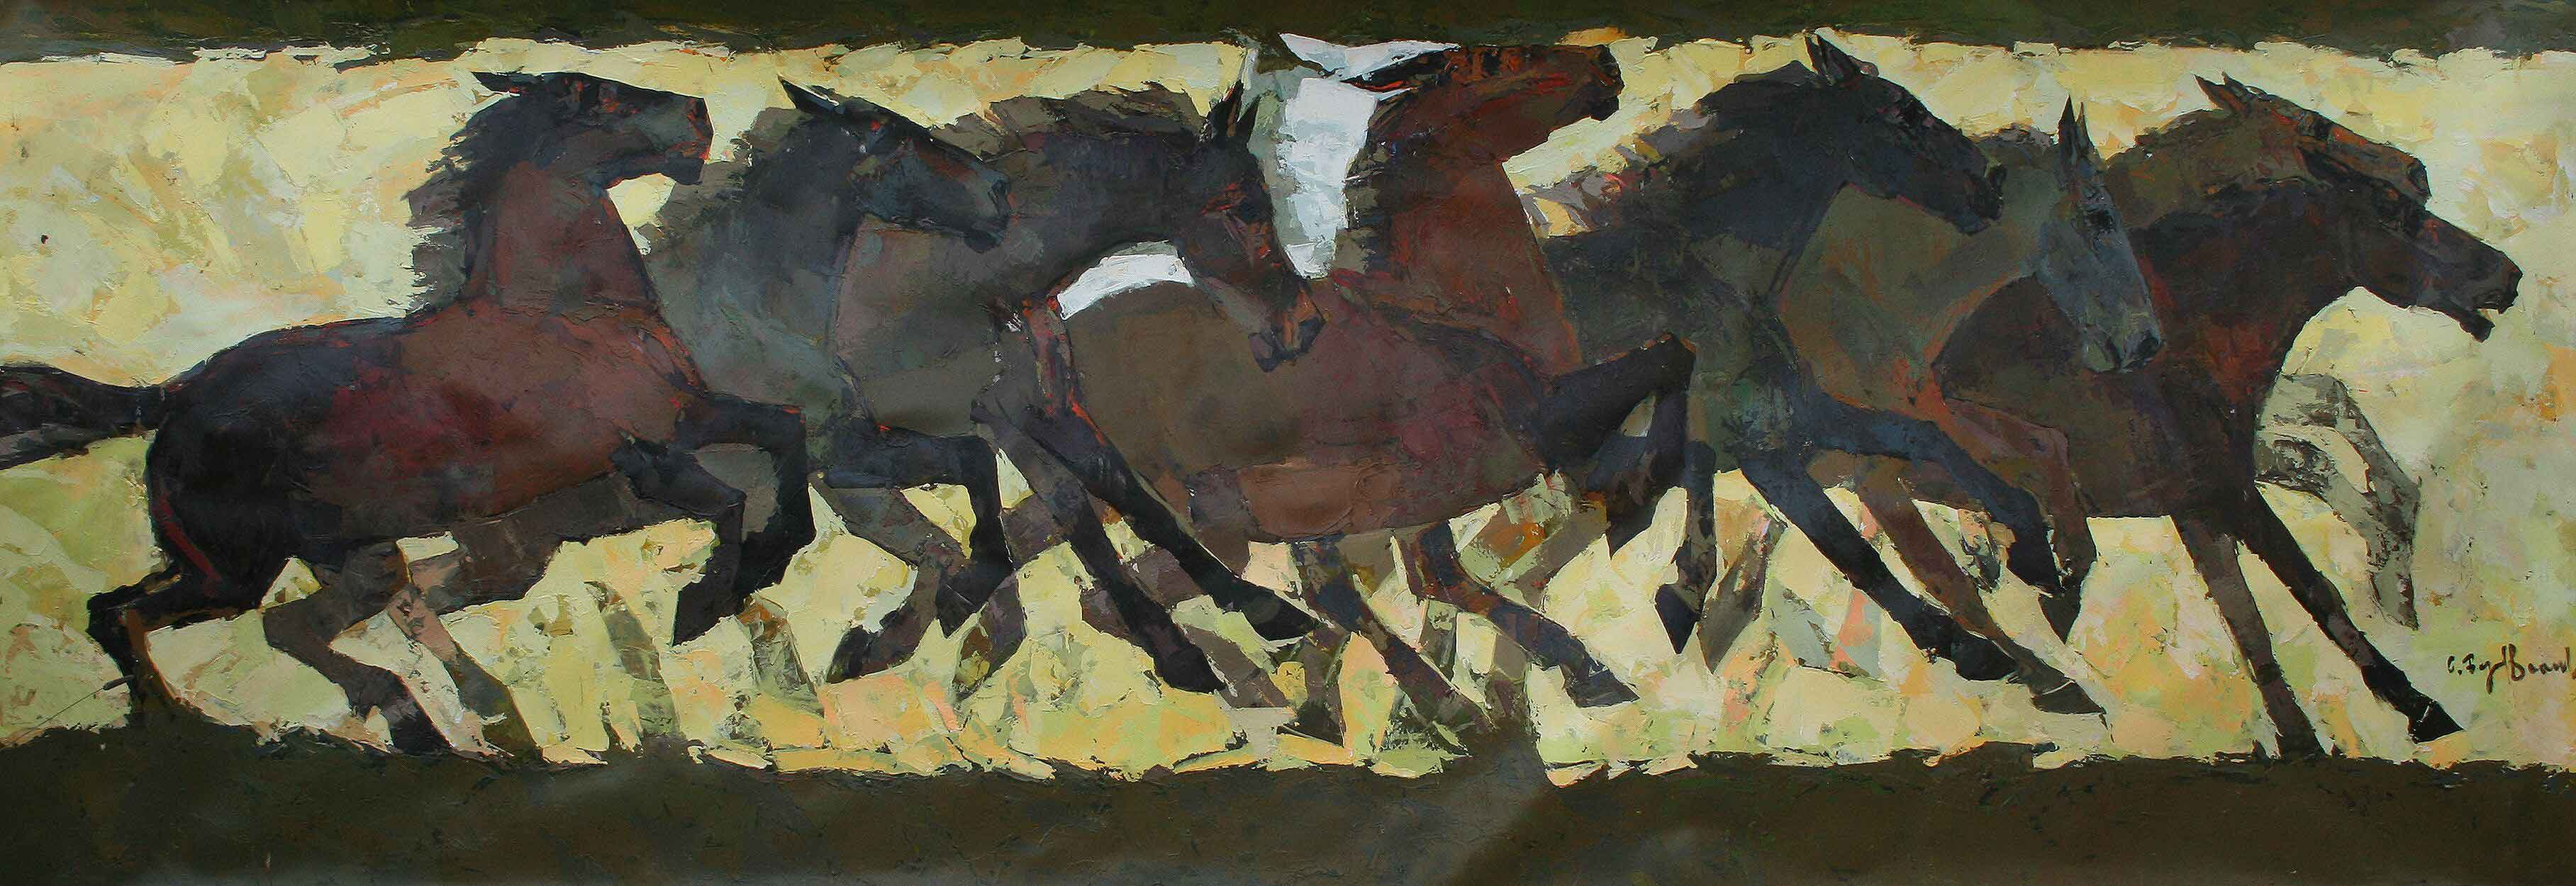 Painting of a herd of horses in various positions